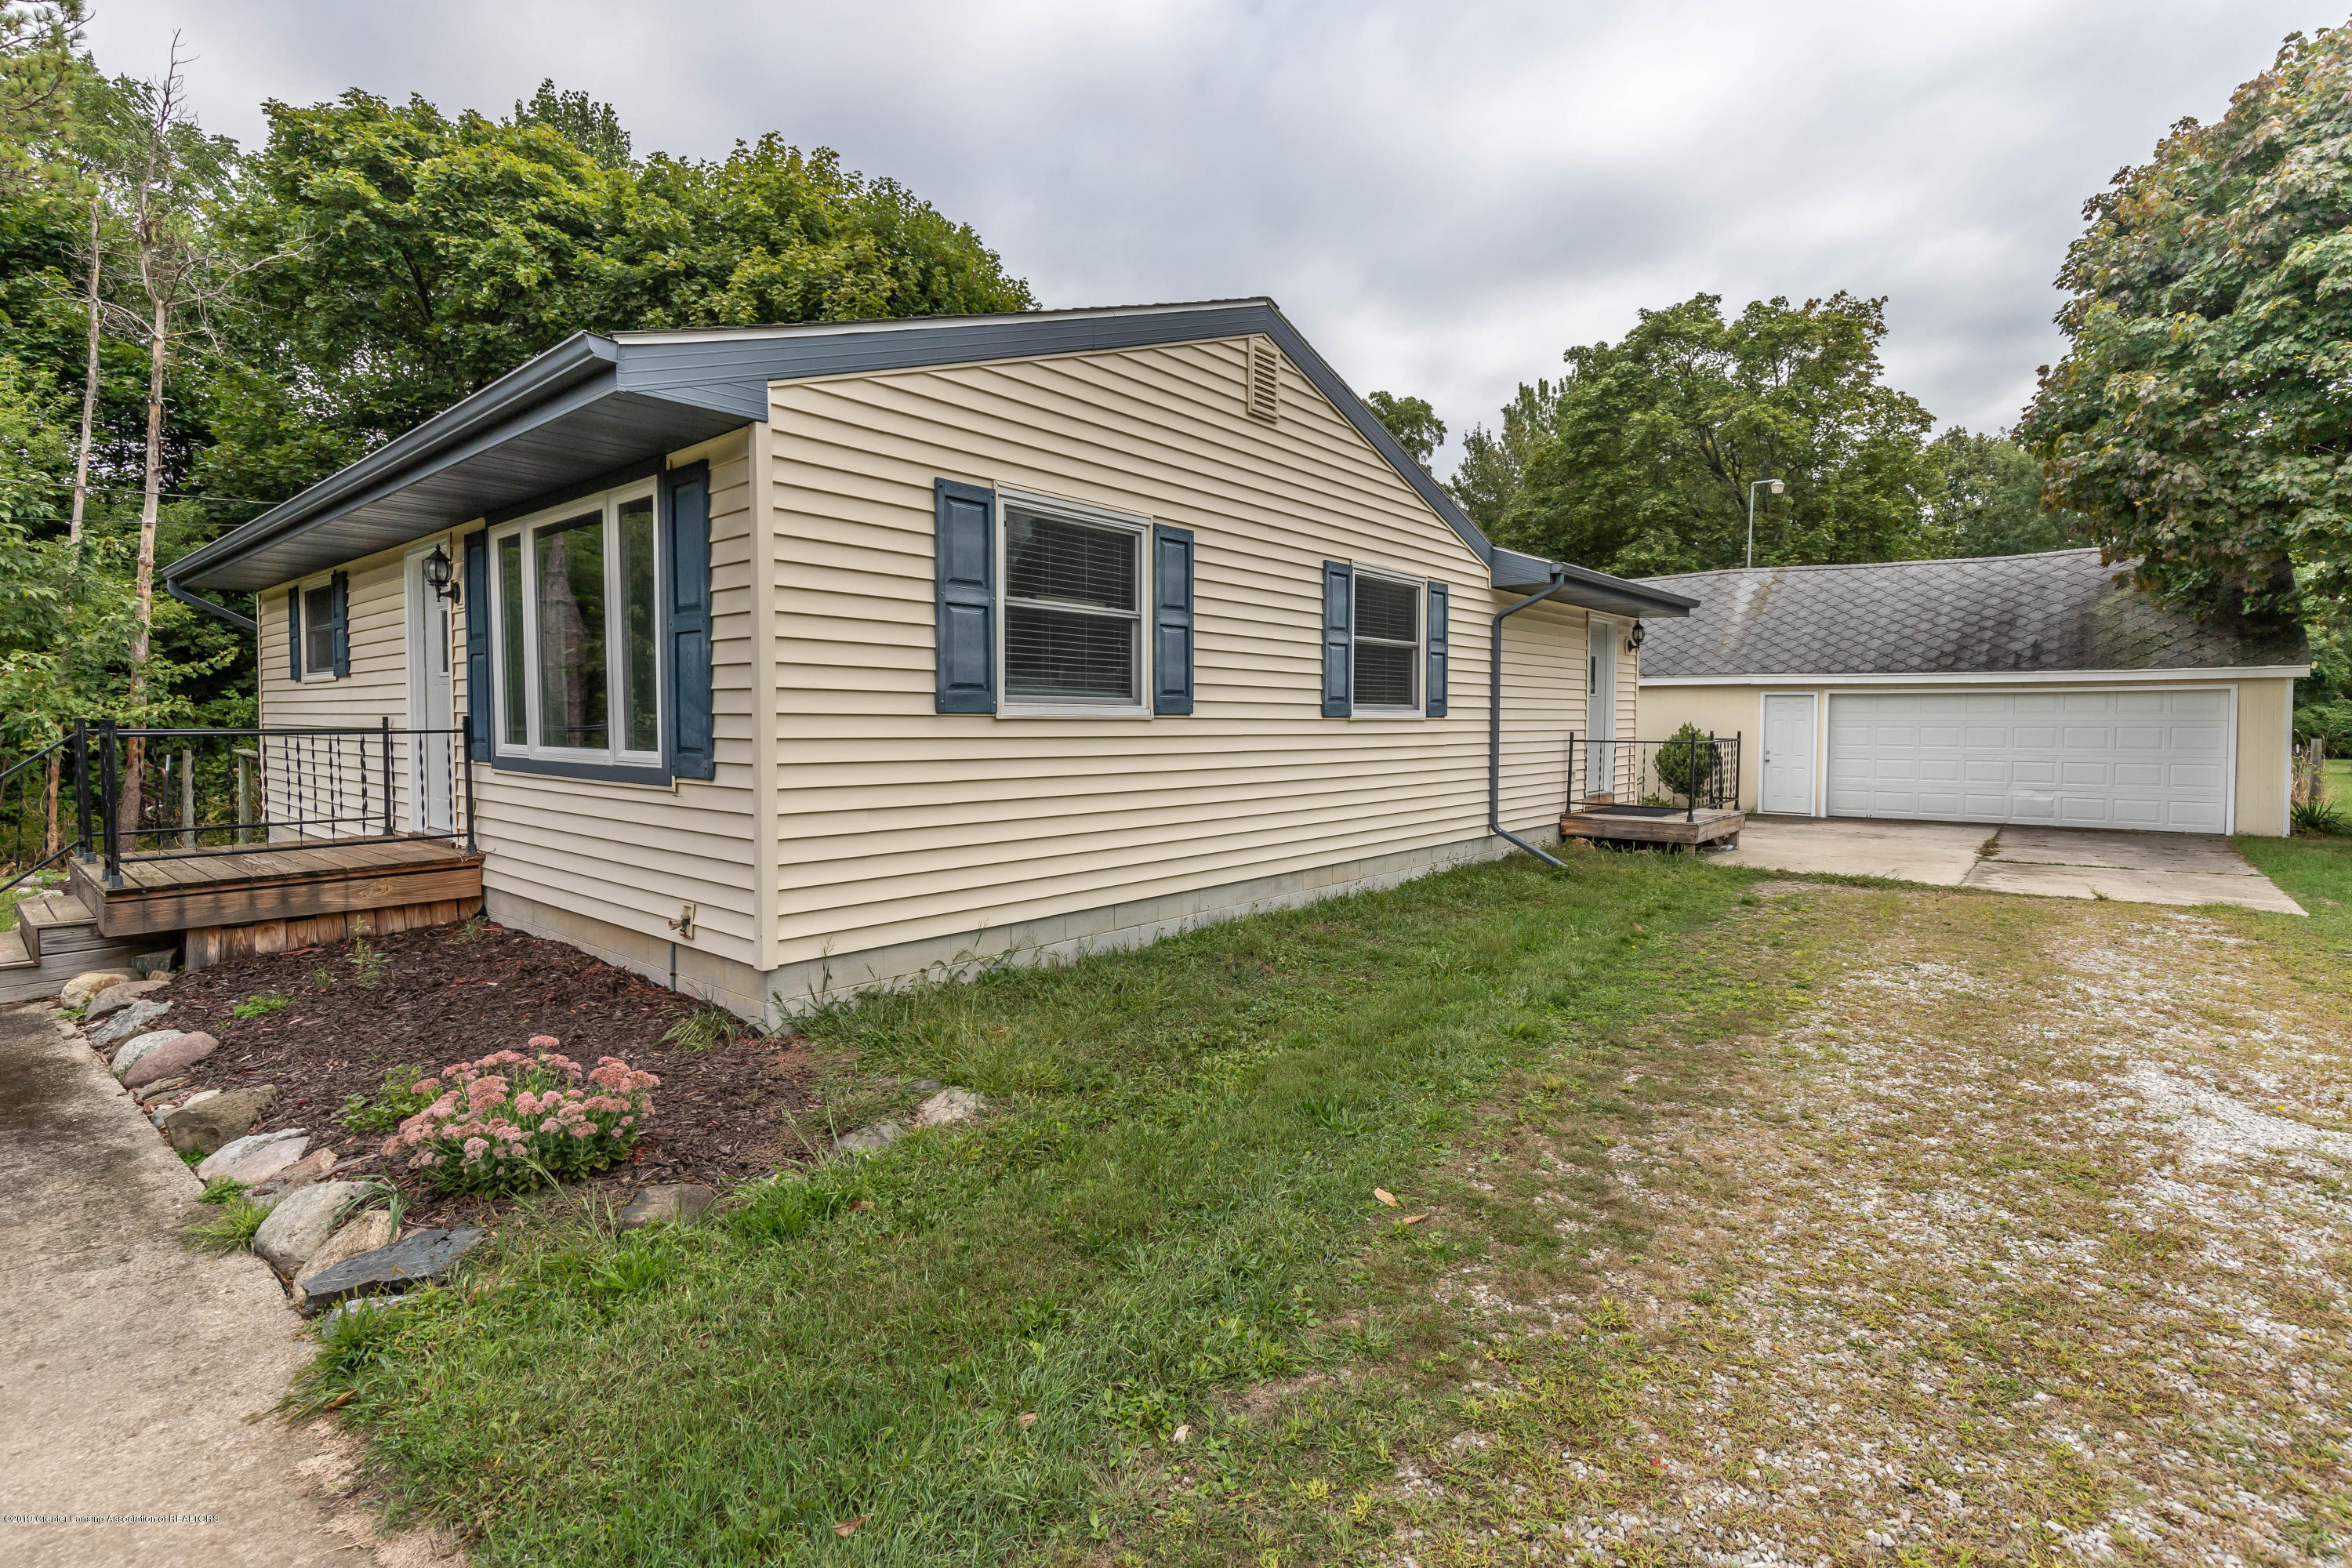 1513 Marcy Ave - marcyfront (1 of 1) - 2